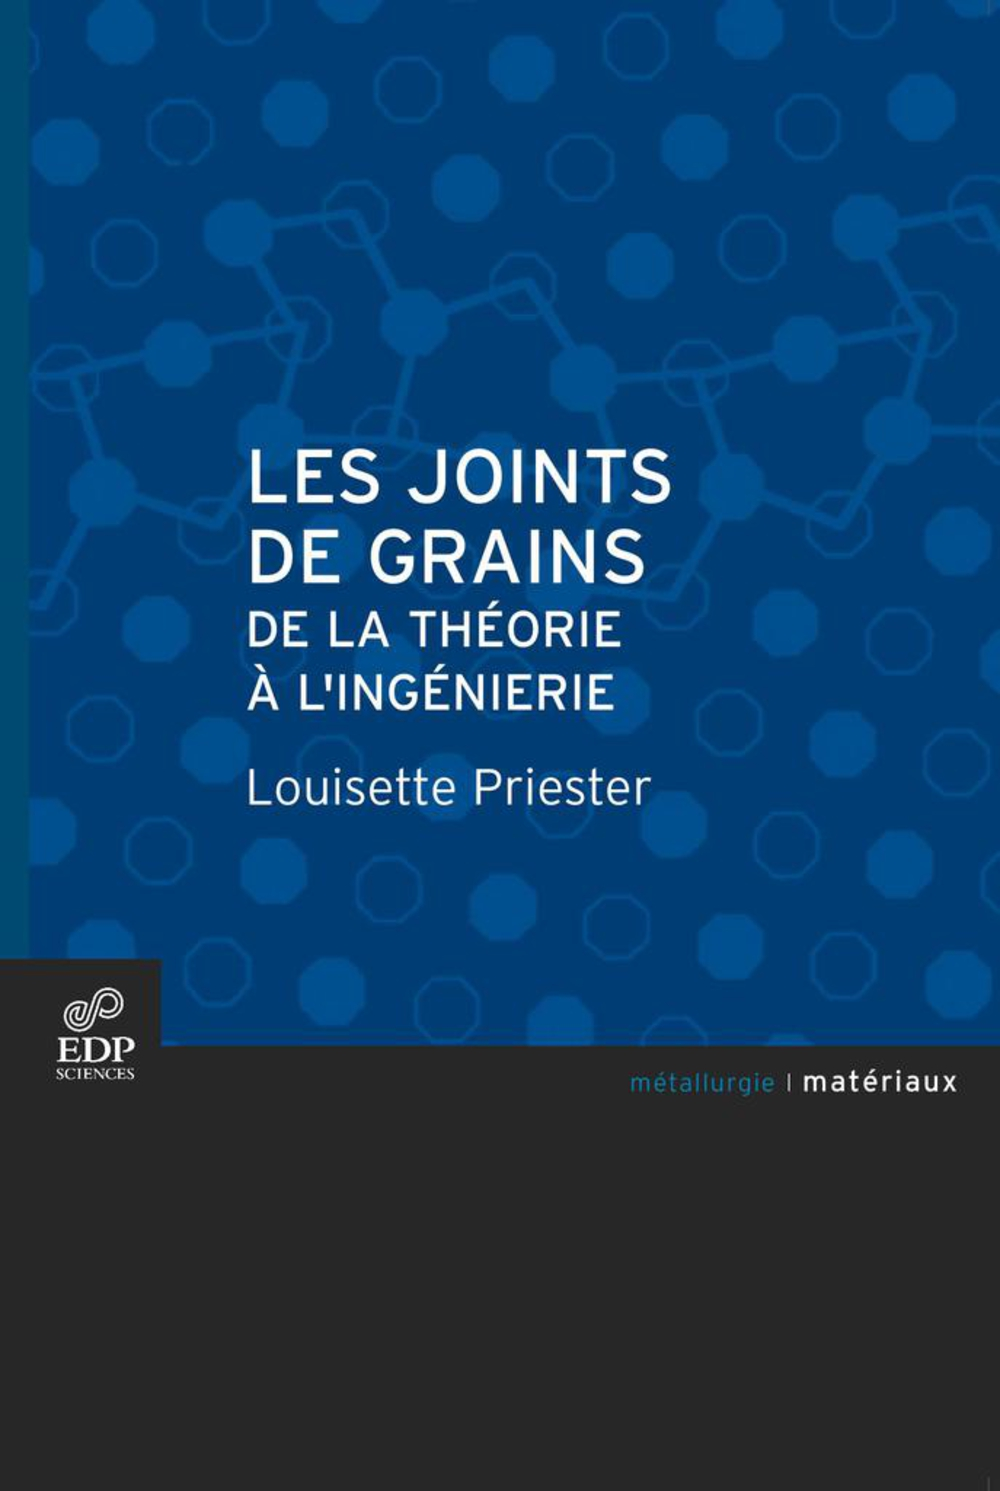 Les joints de grains